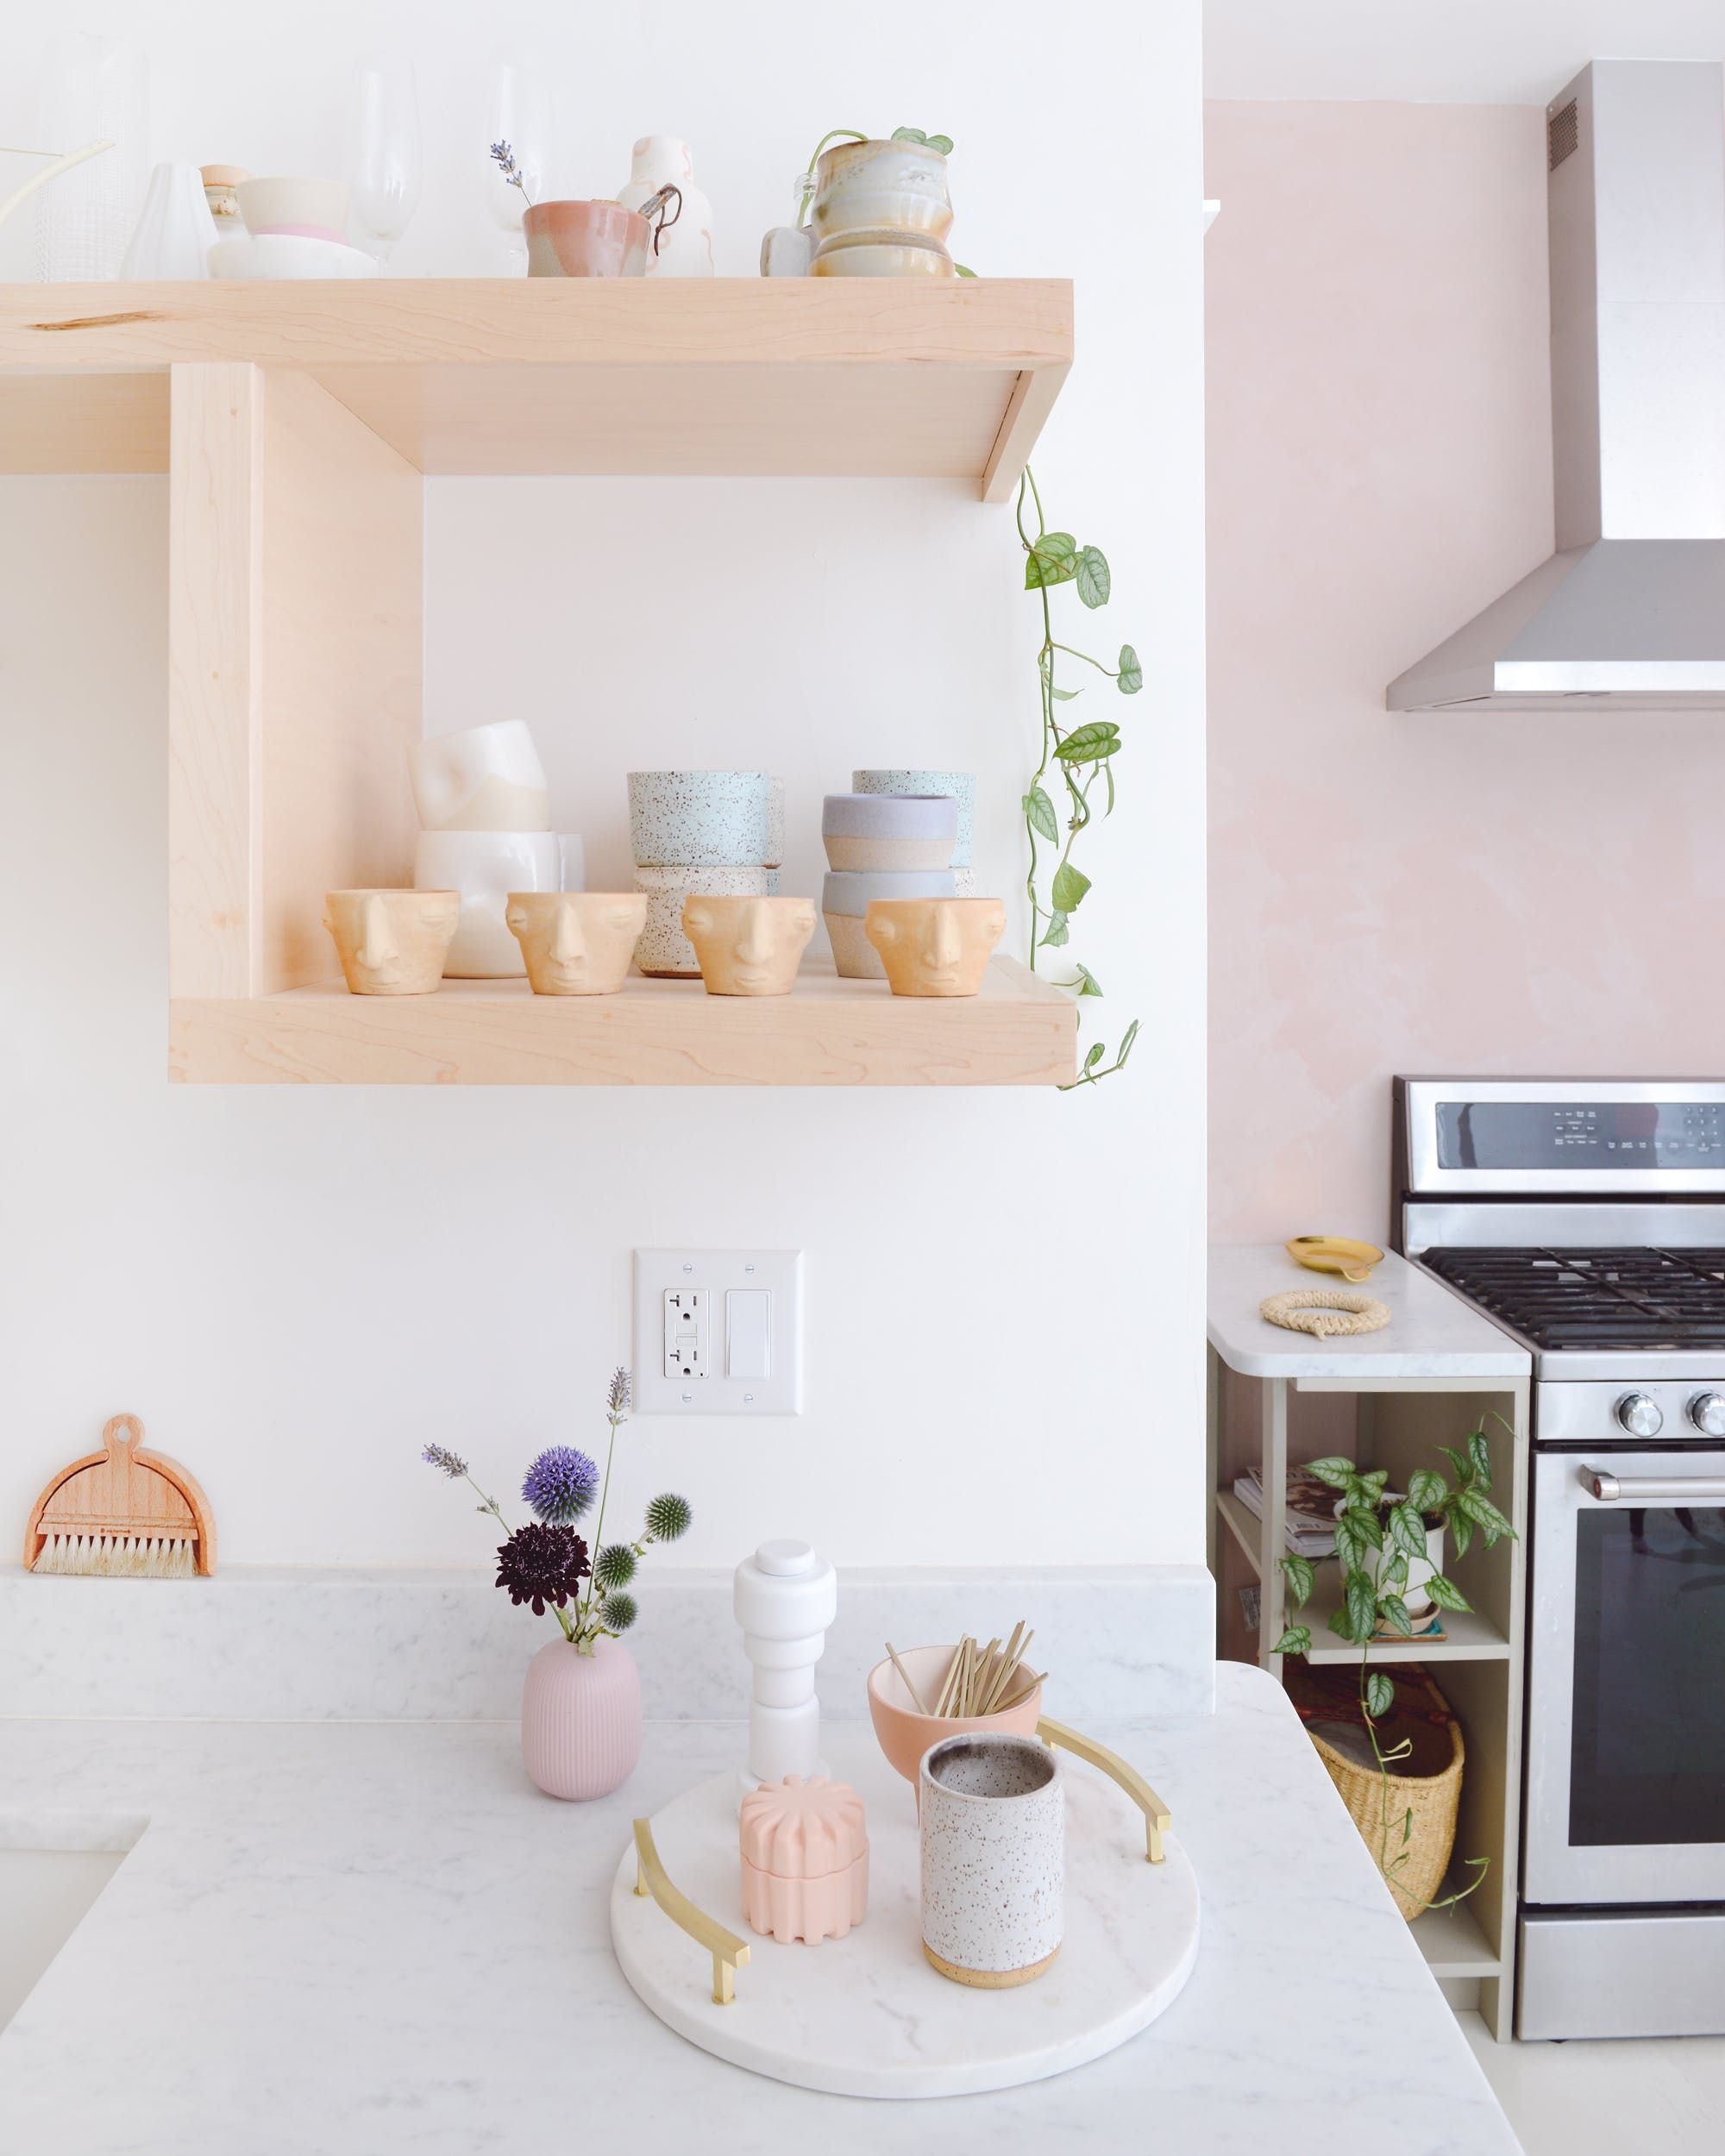 alison wus kitchen is so beautiful we cant even handle it - Wus Kitchen